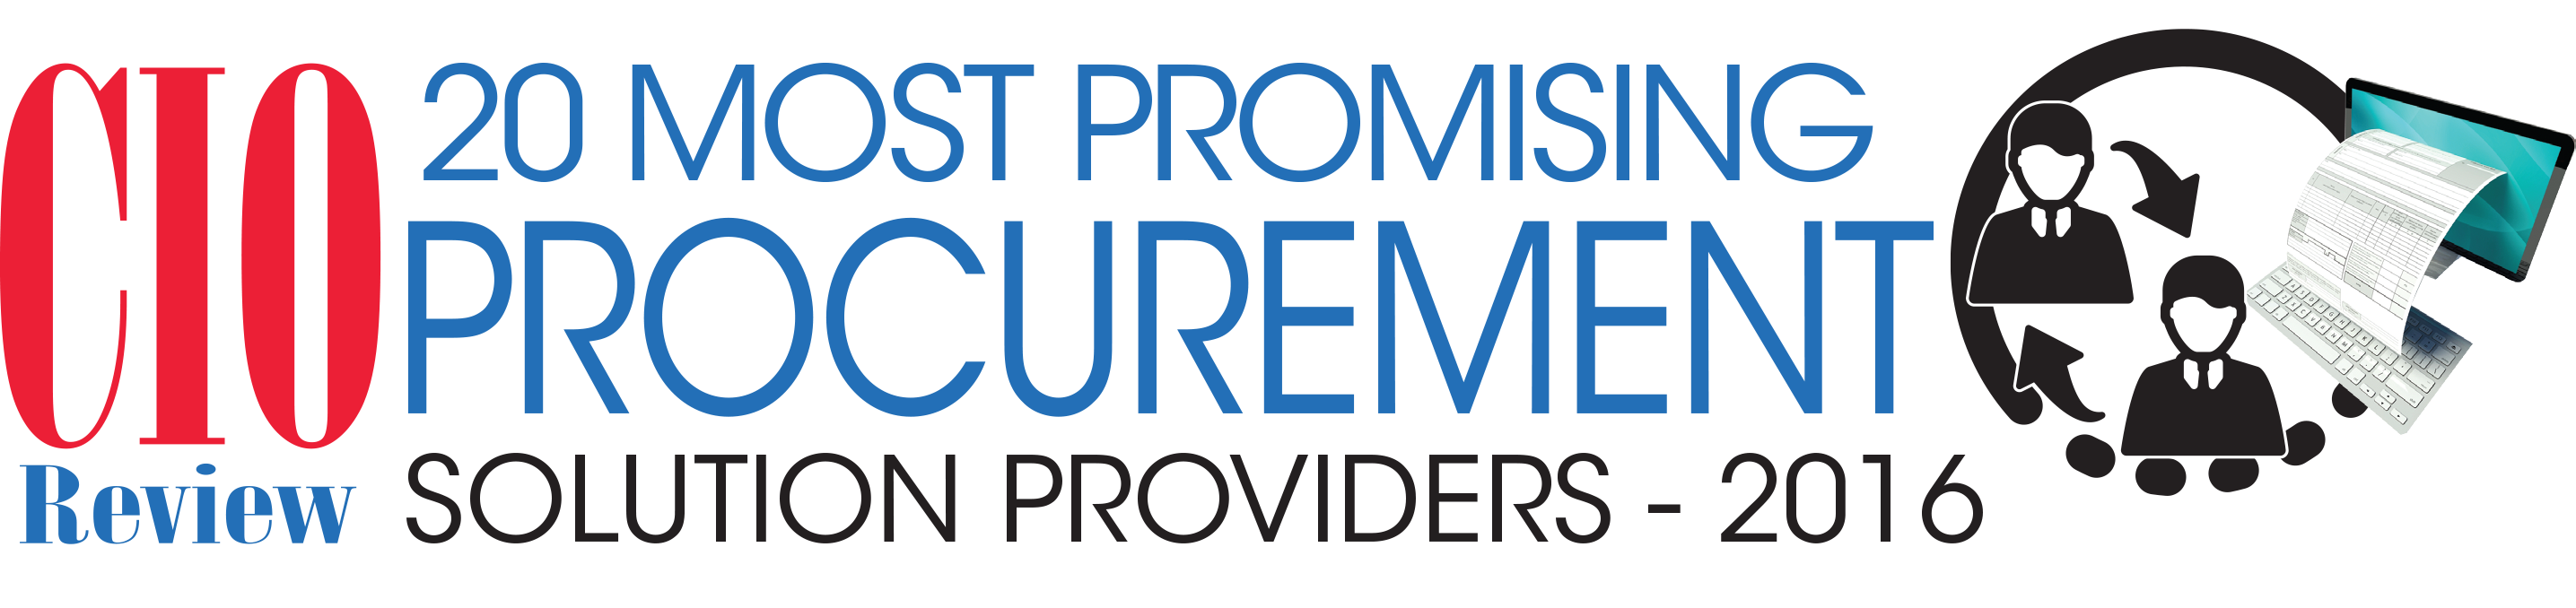 procurement-logo-2016.png